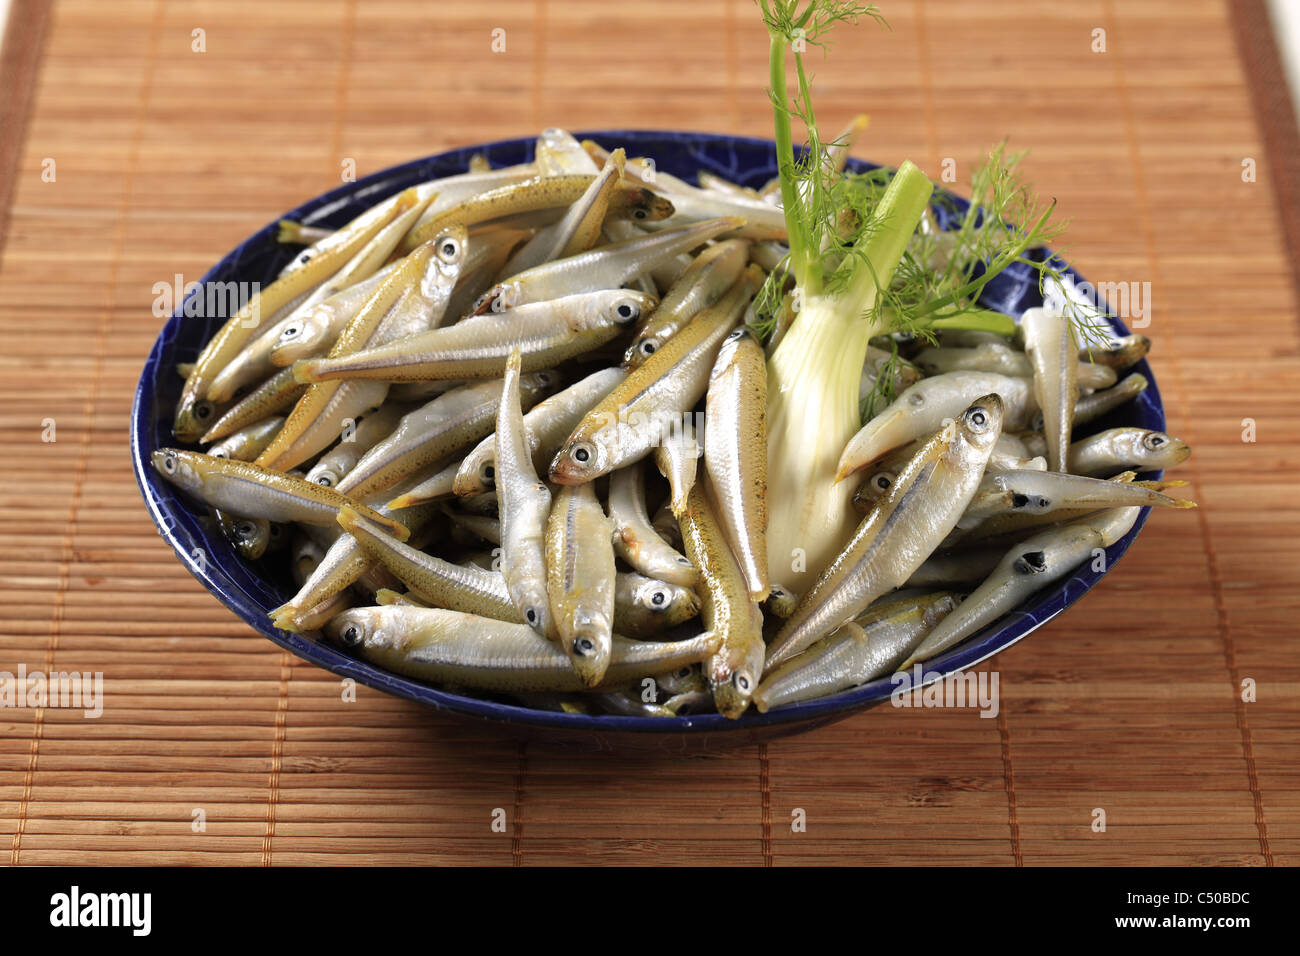 Bowl of fresh anchovies - close up Stock Photo